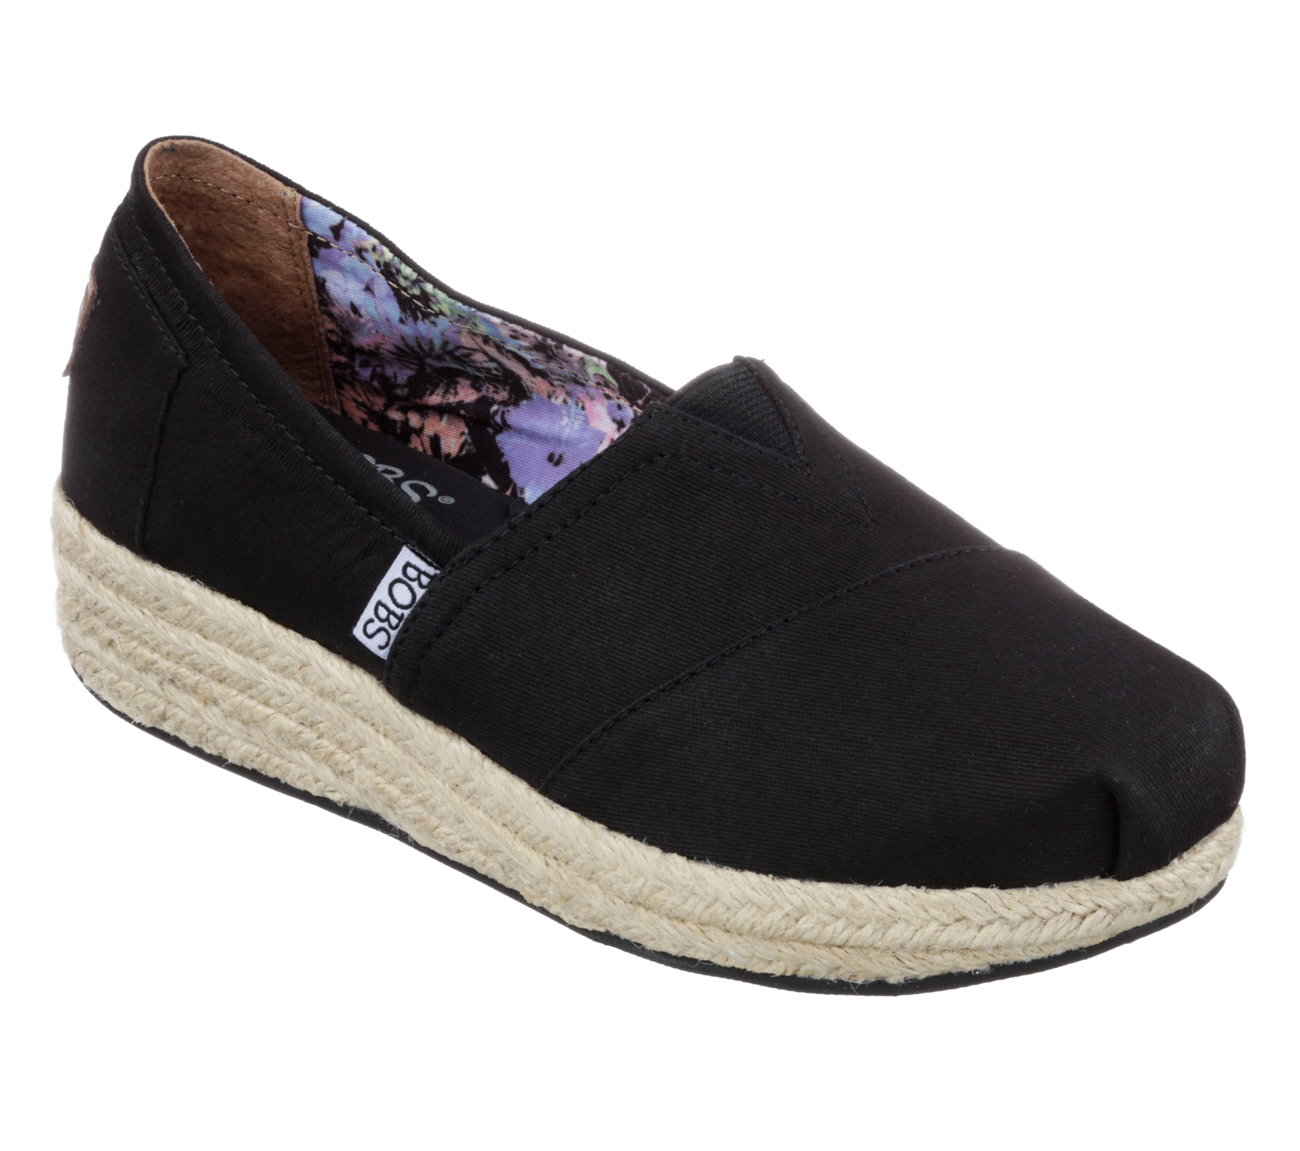 Womens Bobs Shoes Sale: Save Up to 30% Off! Shop moubooks.ml's huge selection of Bobs Shoes for Women - Over 40 styles available. FREE Shipping & Exchanges, and a % price guarantee!